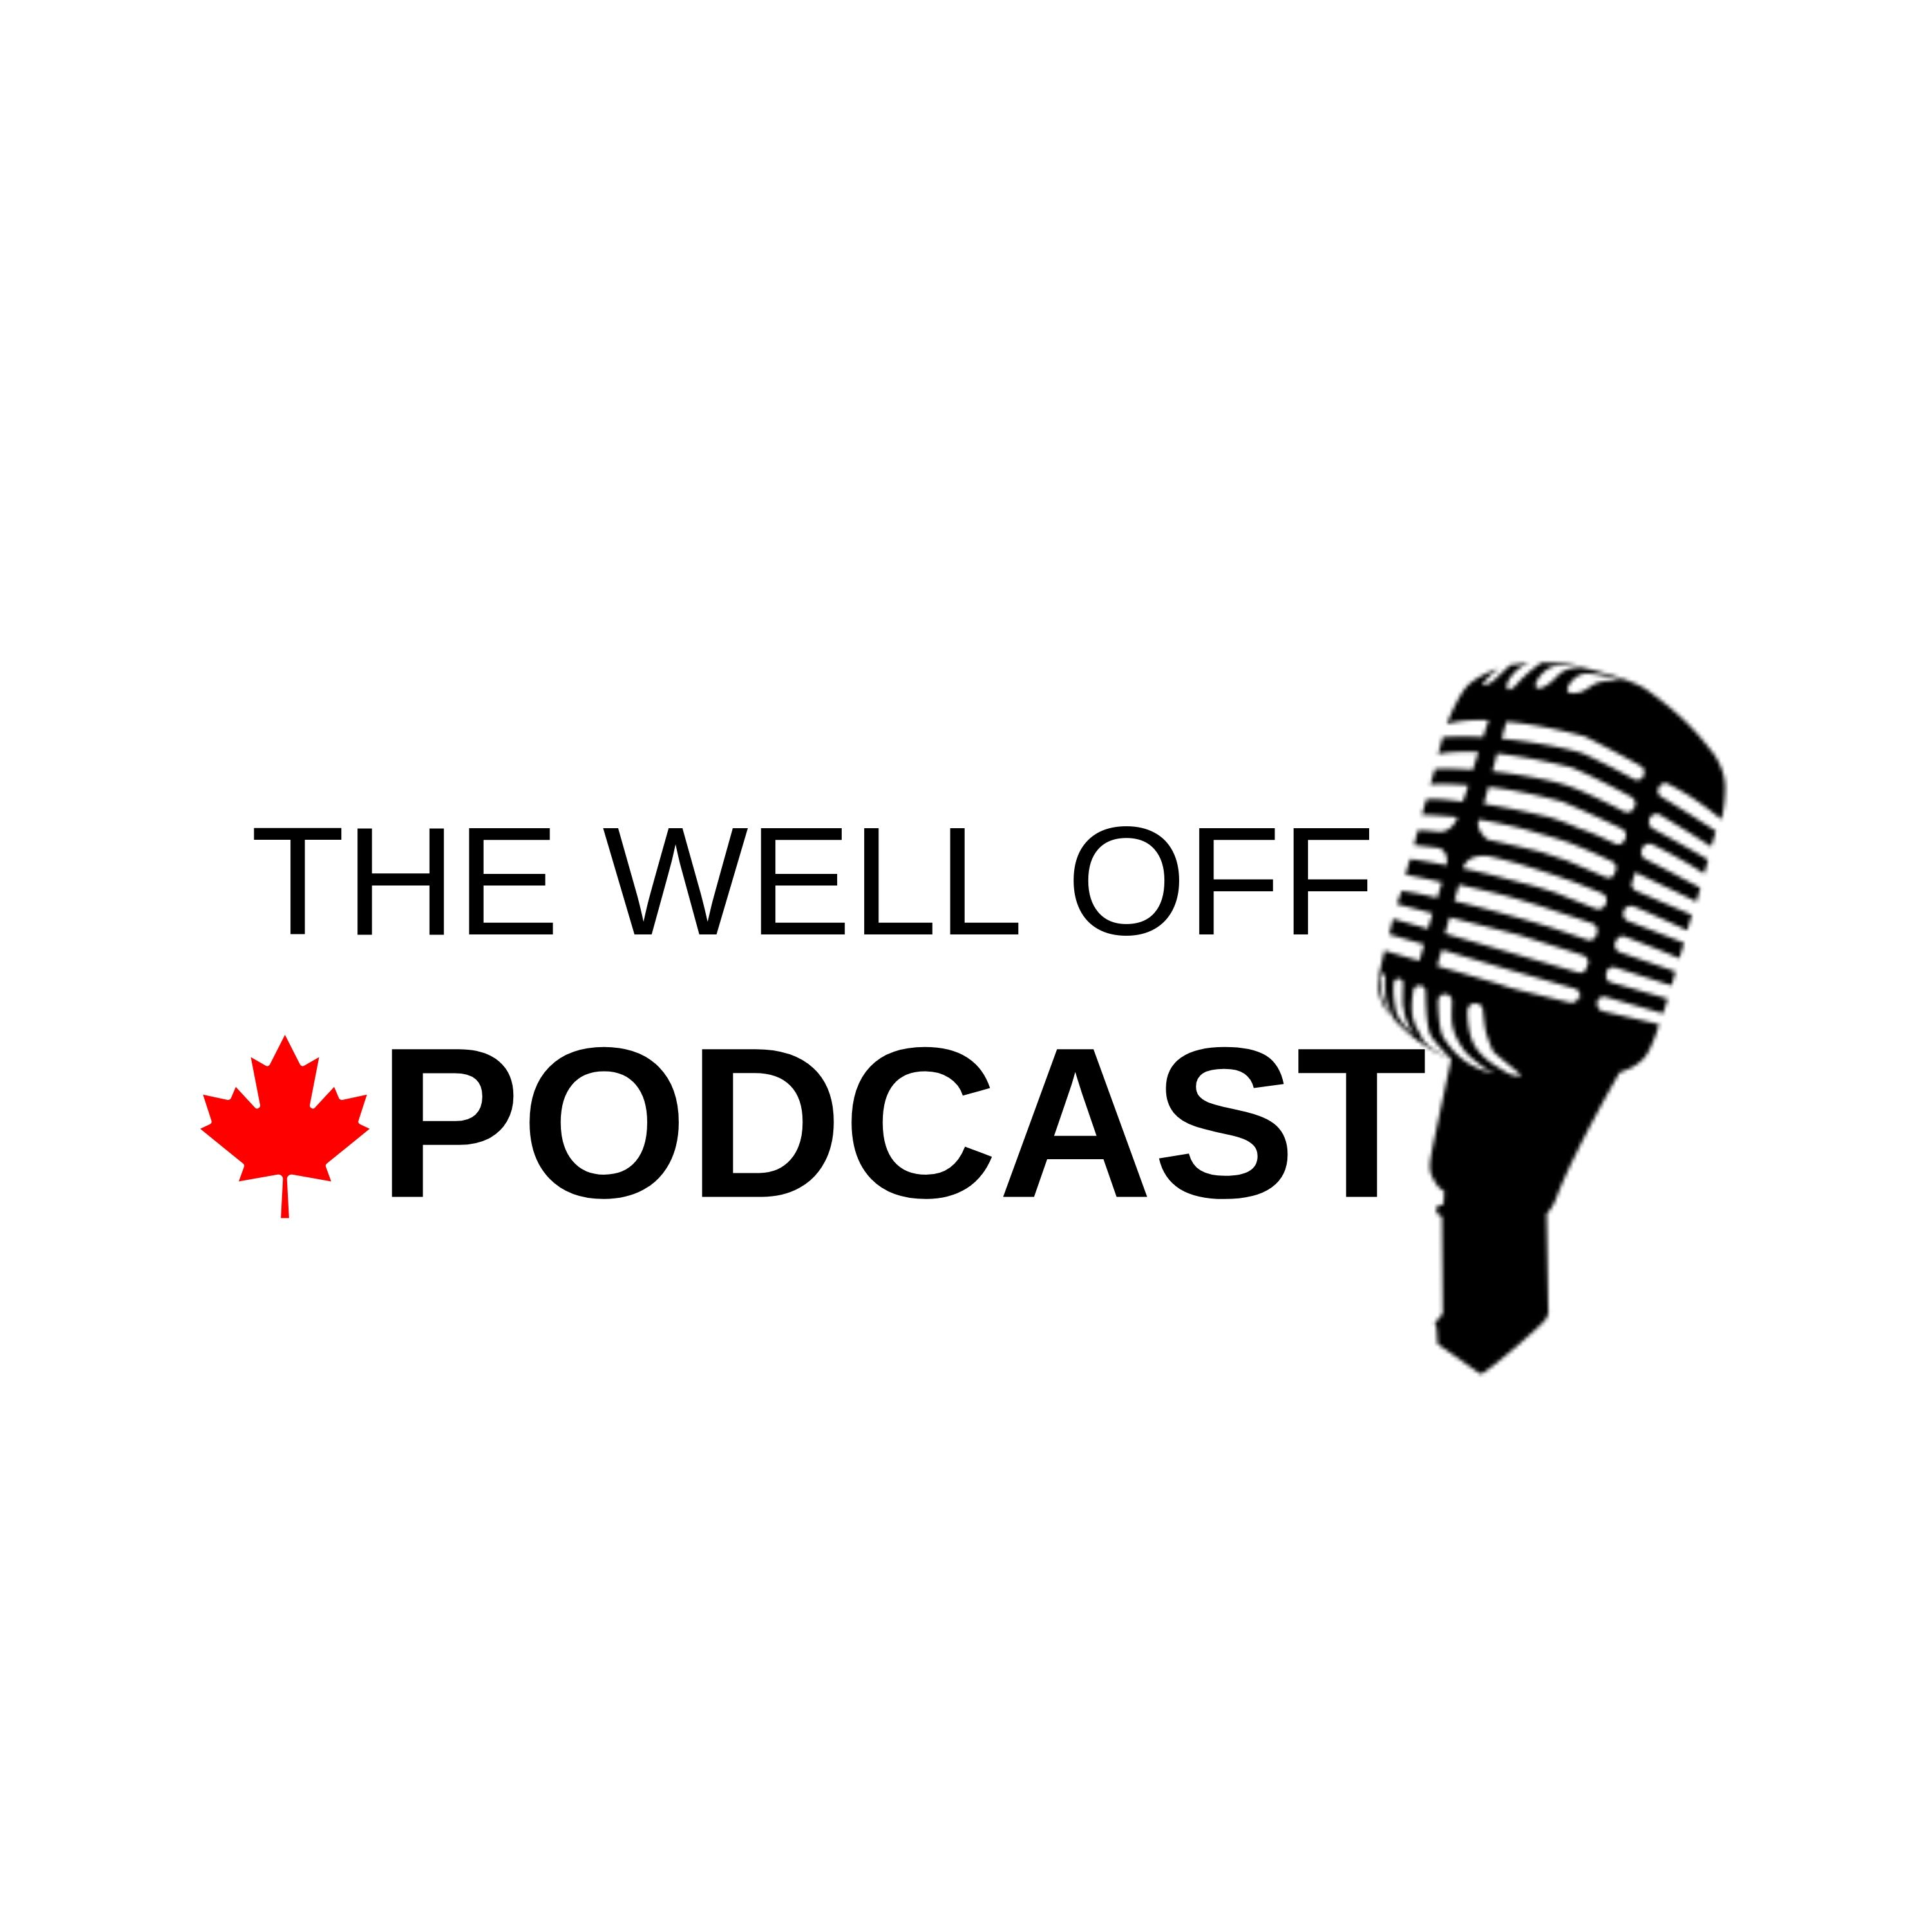 Well Off Podcast show art